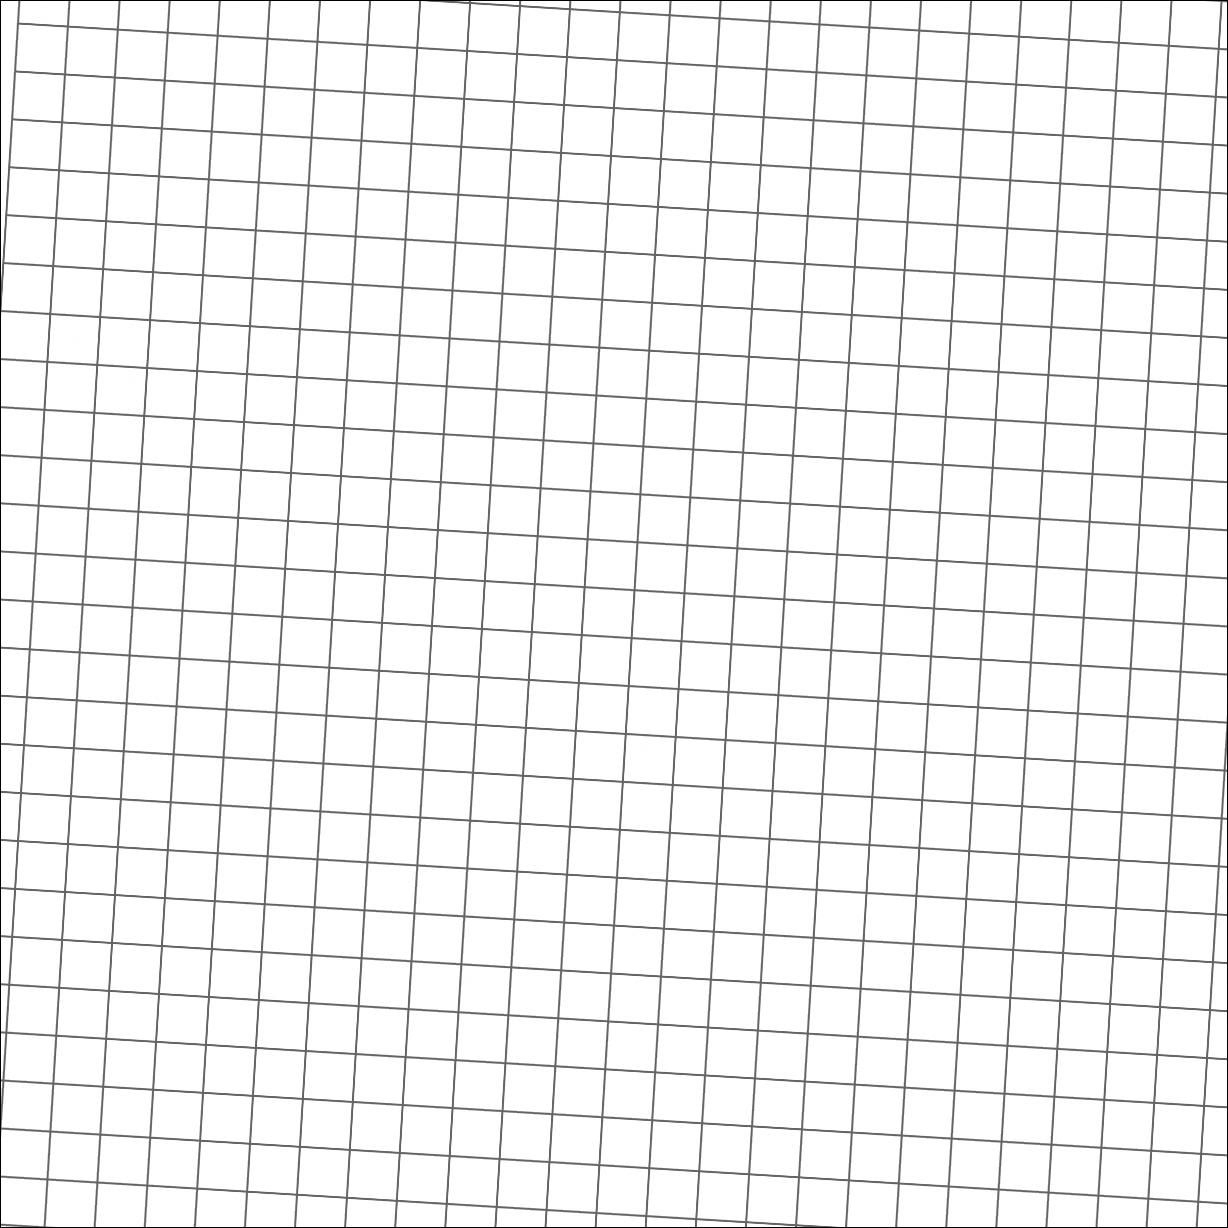 Free Printable Graph Paper! Blank Standard And Metric Graph